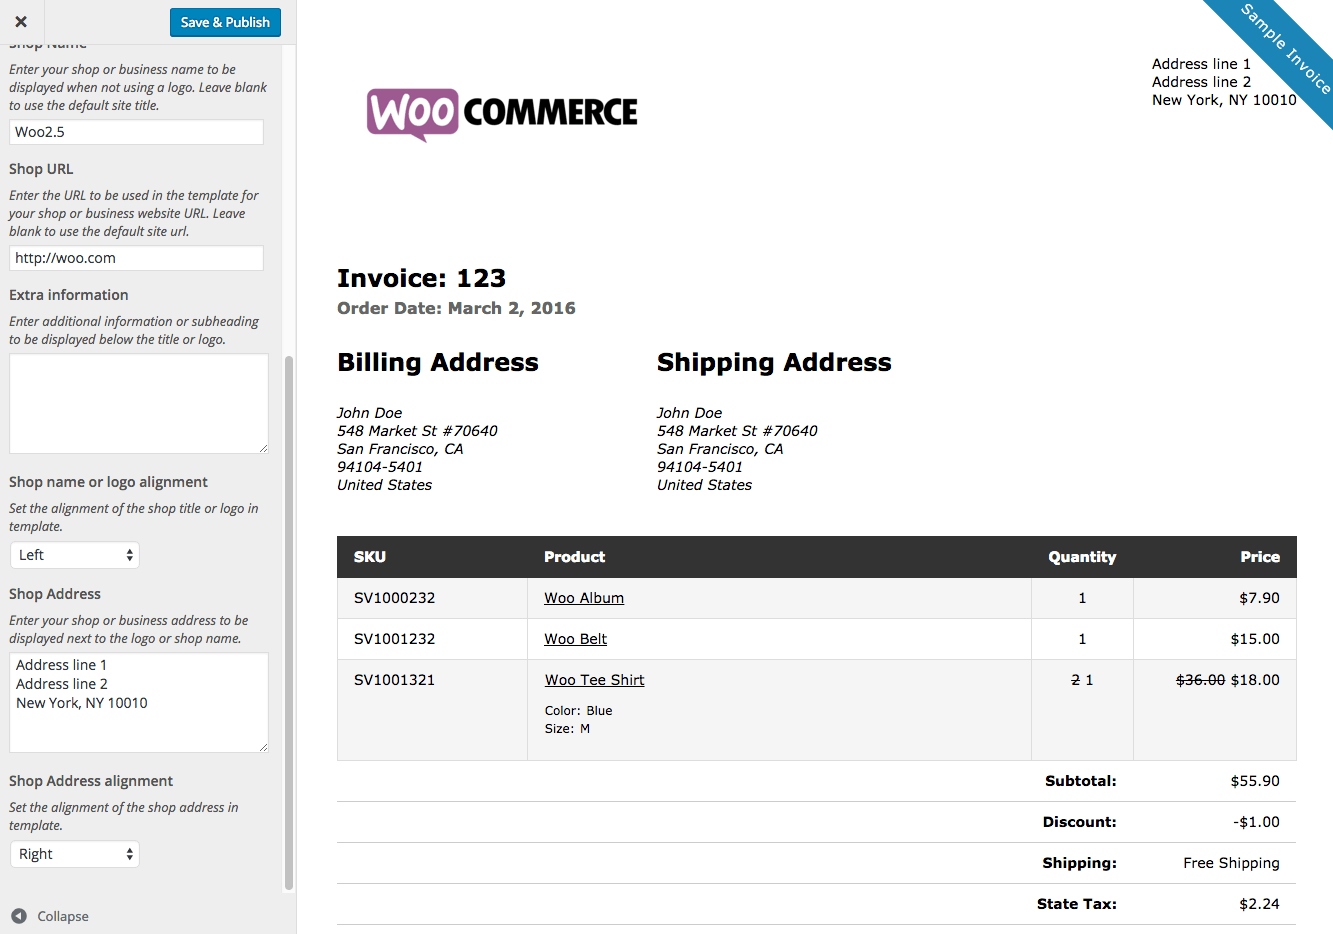 Aaaaeroincus  Picturesque Woocommerce Print Invoices Amp Packing Lists  Woocommerce Docs With Lovable Woocommerce Print Invoices  Packing Lists Customizer With Cool Neiman Marcus Return Policy No Receipt Also Stamp Duty Receipt In Addition Renewal Premium Receipt And Medical Receipt Template Word As Well As Petsmart No Receipt Return Policy Additionally E Ticket Itinerary Receipt From Docswoocommercecom With Aaaaeroincus  Lovable Woocommerce Print Invoices Amp Packing Lists  Woocommerce Docs With Cool Woocommerce Print Invoices  Packing Lists Customizer And Picturesque Neiman Marcus Return Policy No Receipt Also Stamp Duty Receipt In Addition Renewal Premium Receipt From Docswoocommercecom